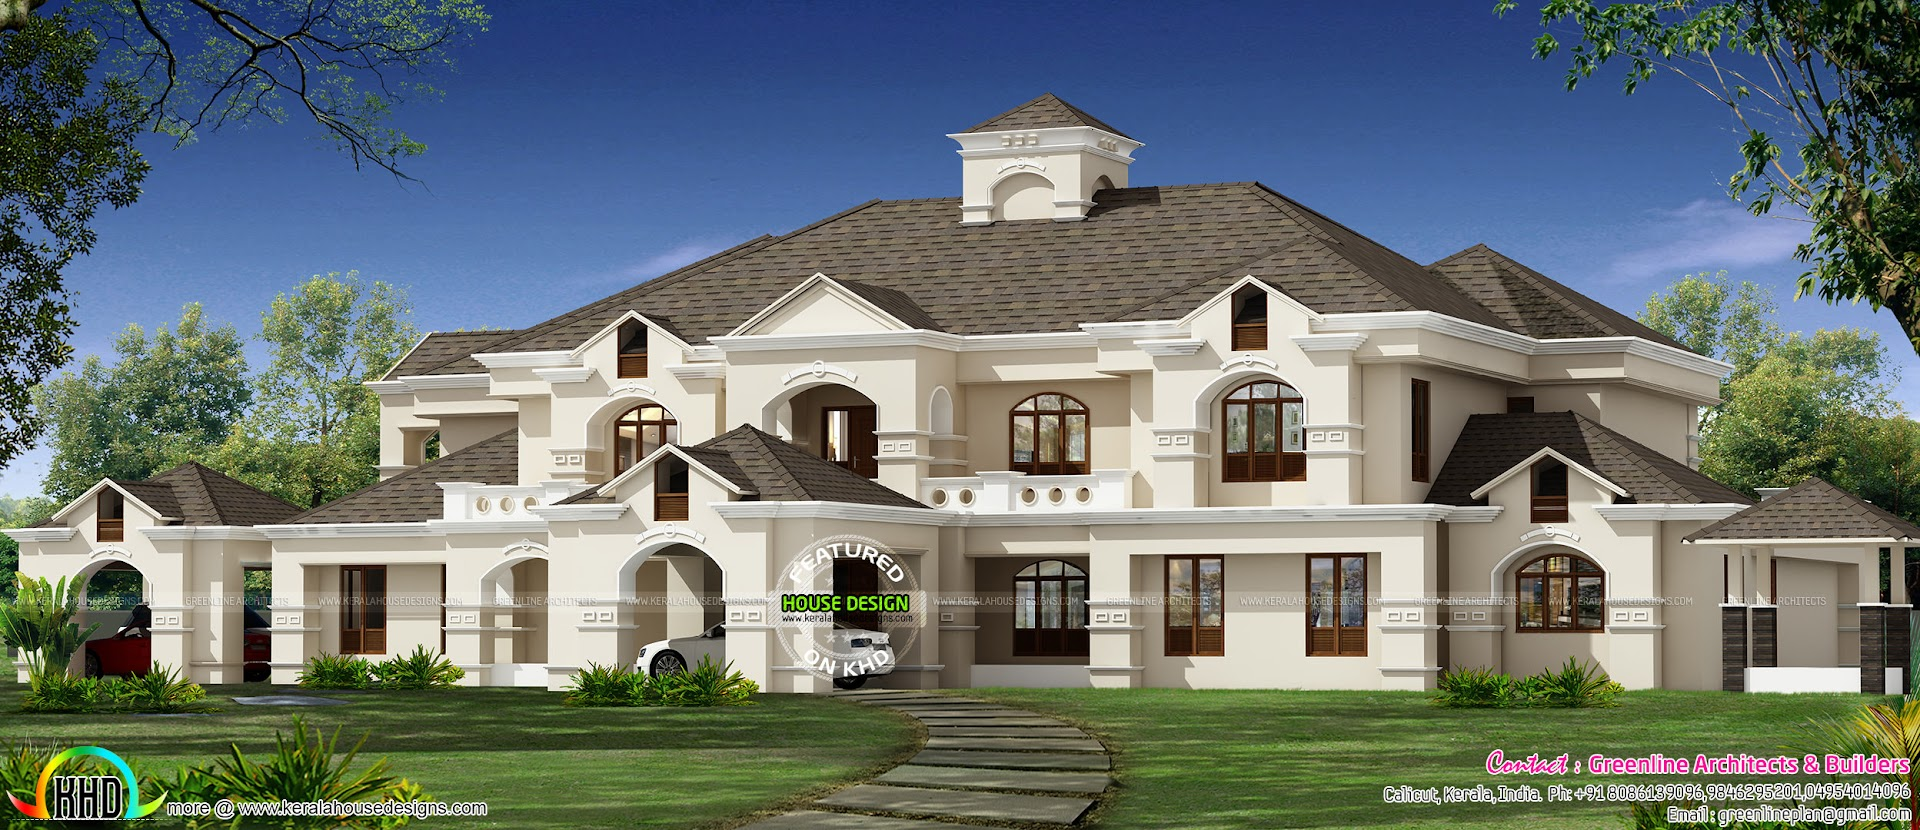 911 sq yd luxury colonial house architecture kerala home for Luxury home architects